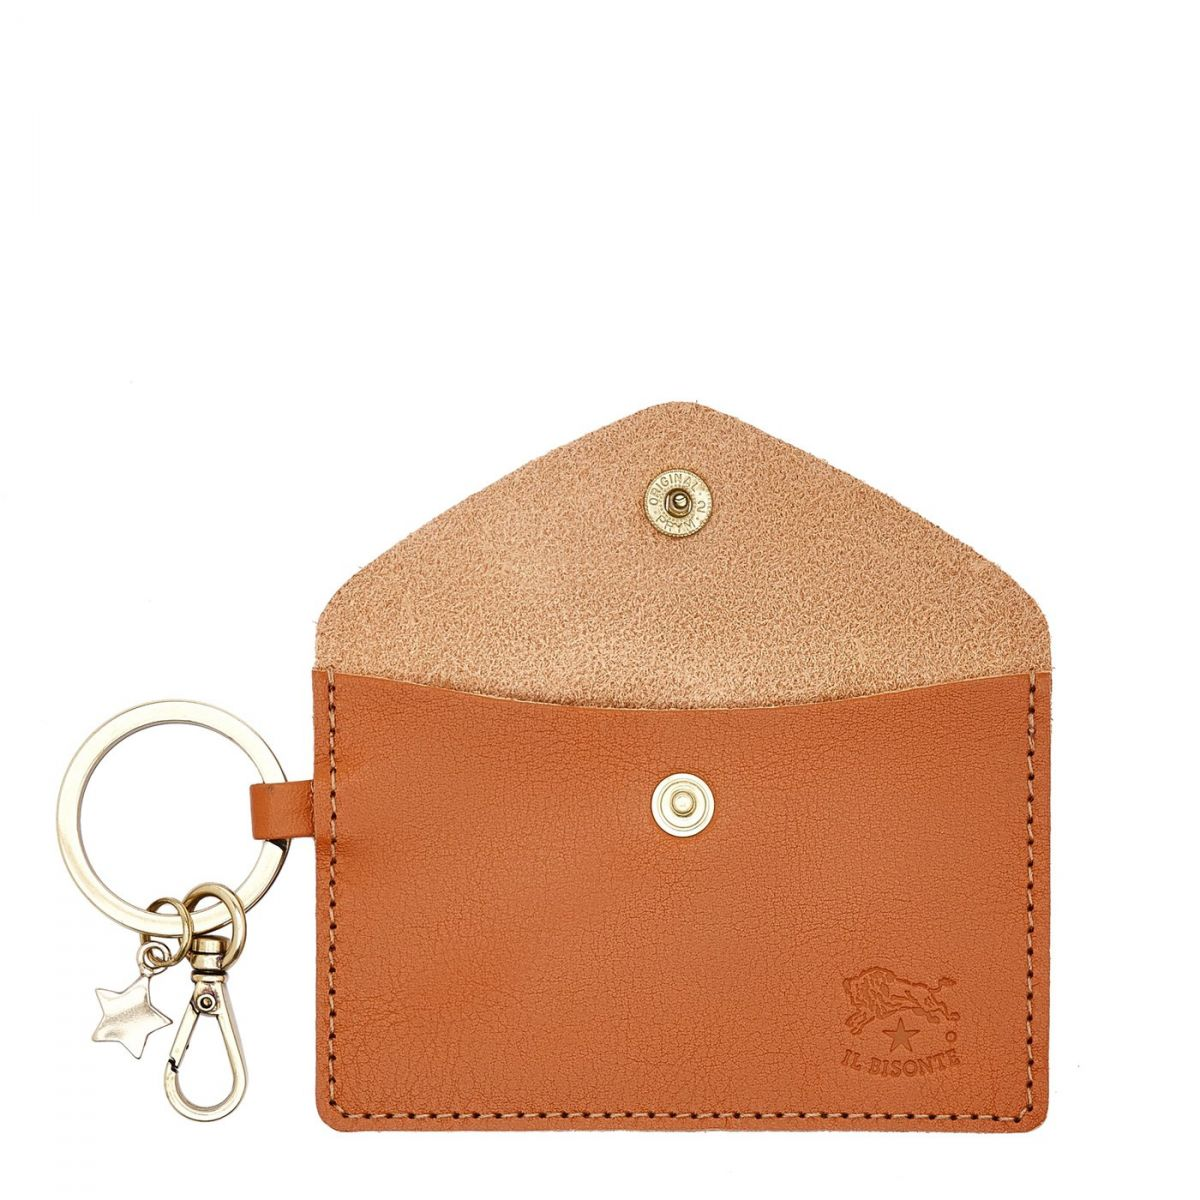 Scarlino - Women's Keyring  in Cowhide Double Leather SKH042 color Caramel | Details